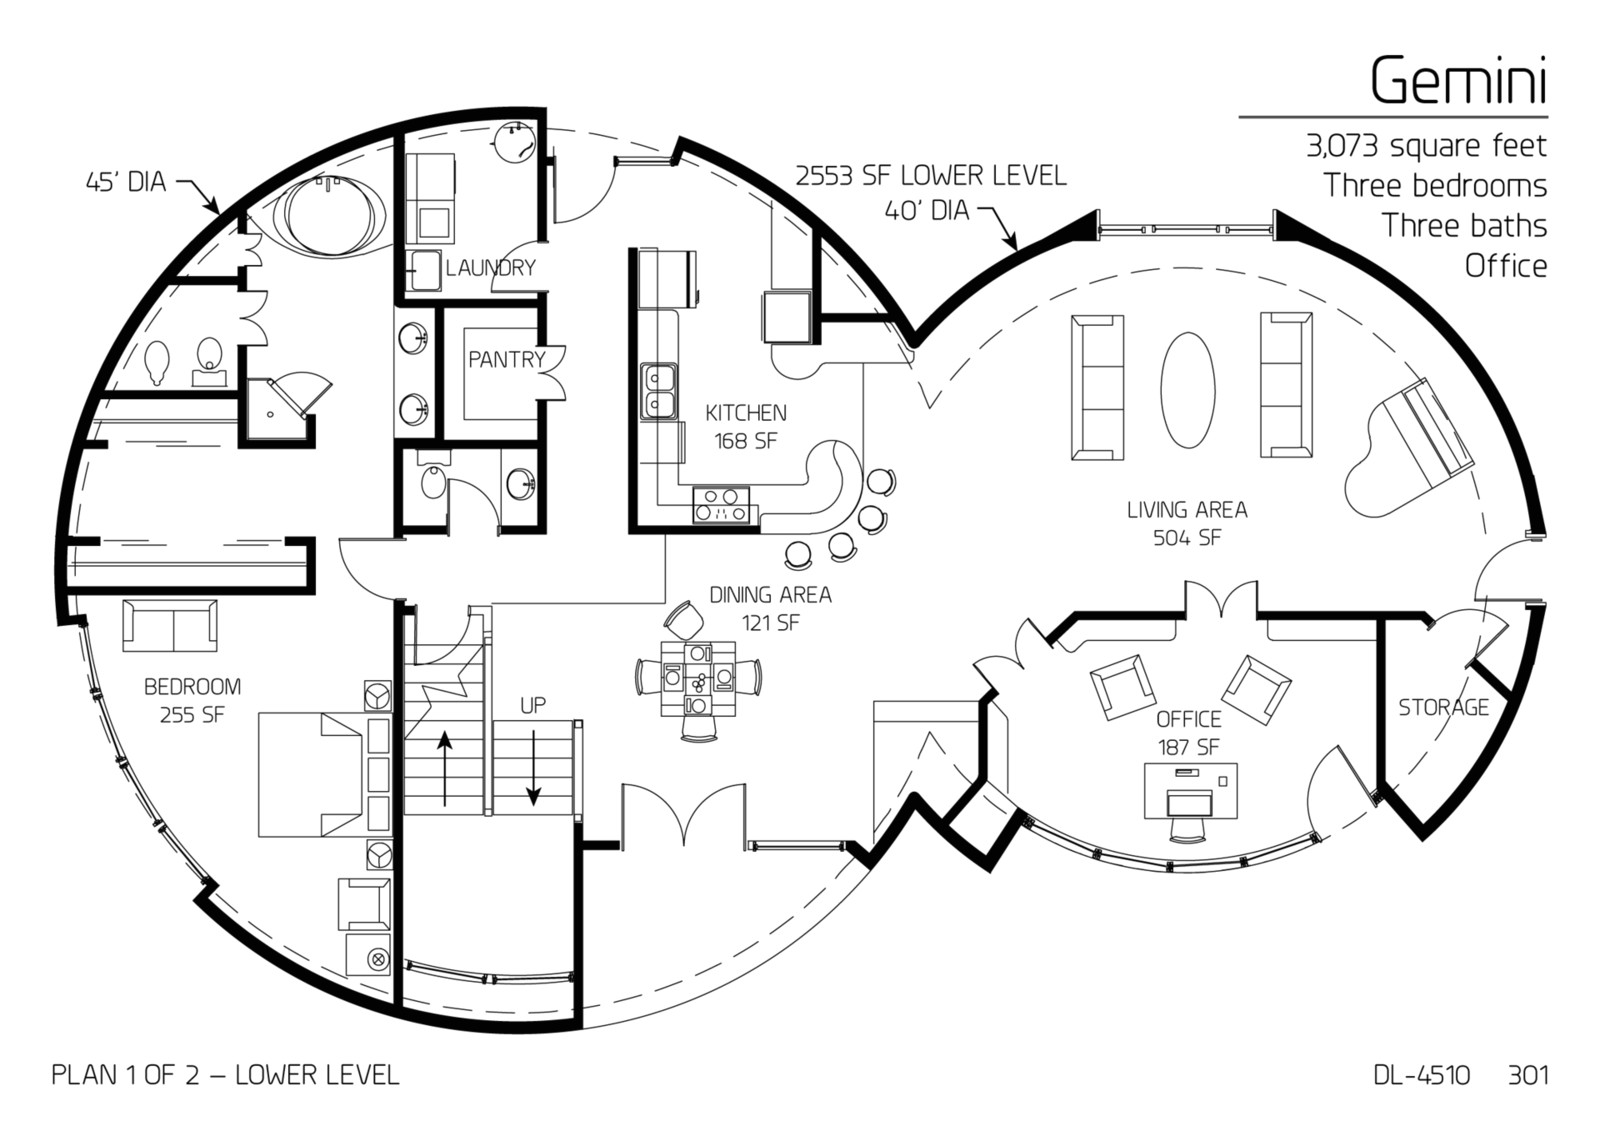 concrete dome house plan fantastic at cool dl 3210u floor plans multi level home designs monolithic